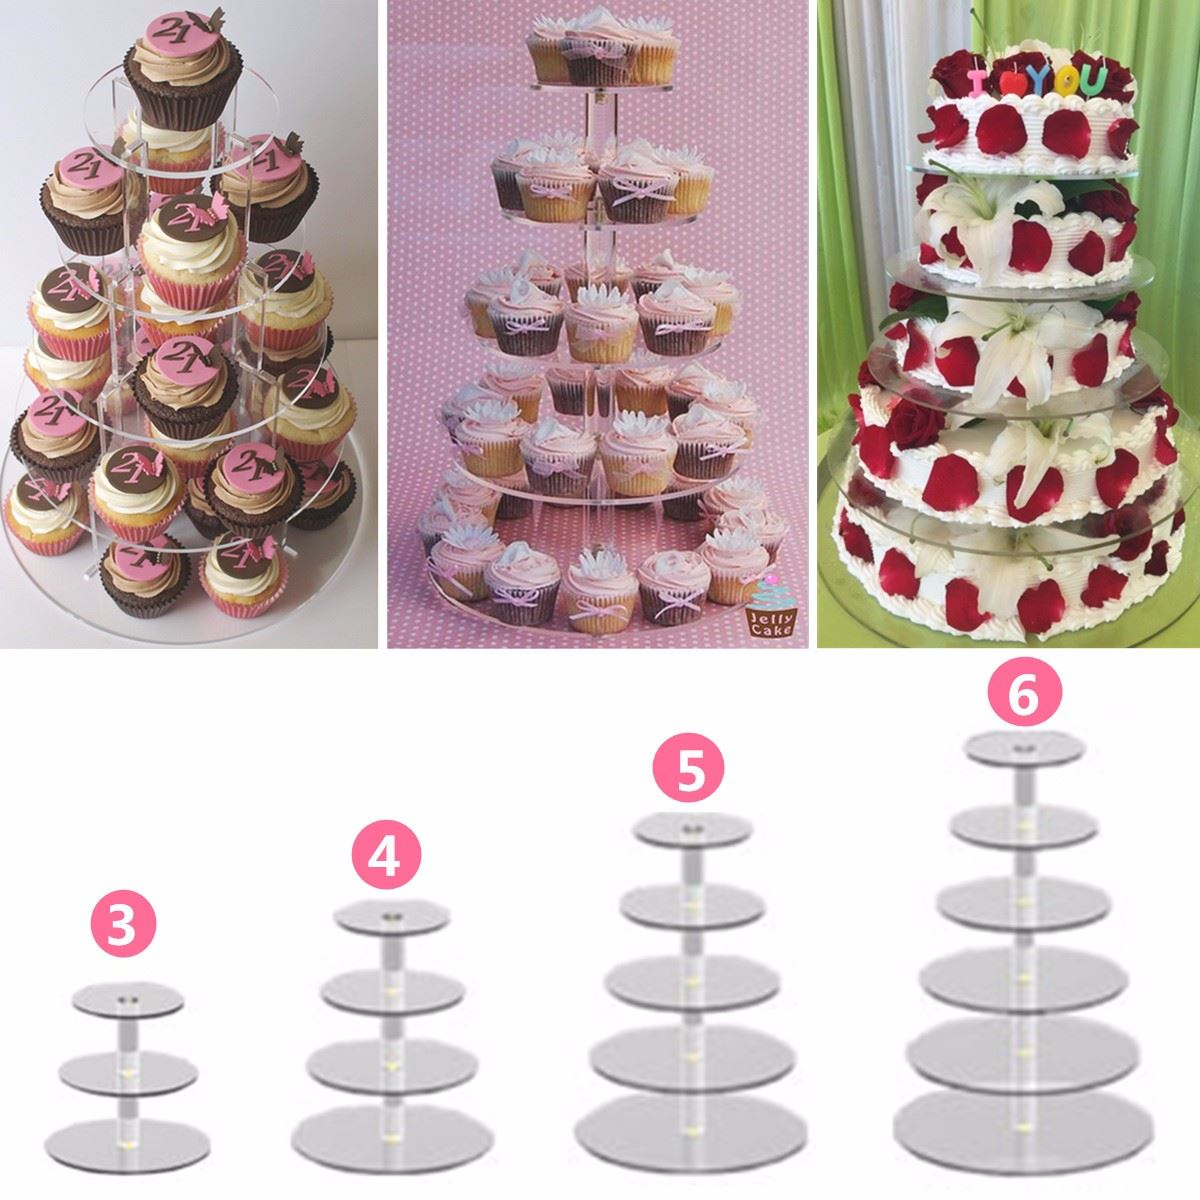 Buy Acrylic Cake Stand And Get Free Shipping On AliExpress